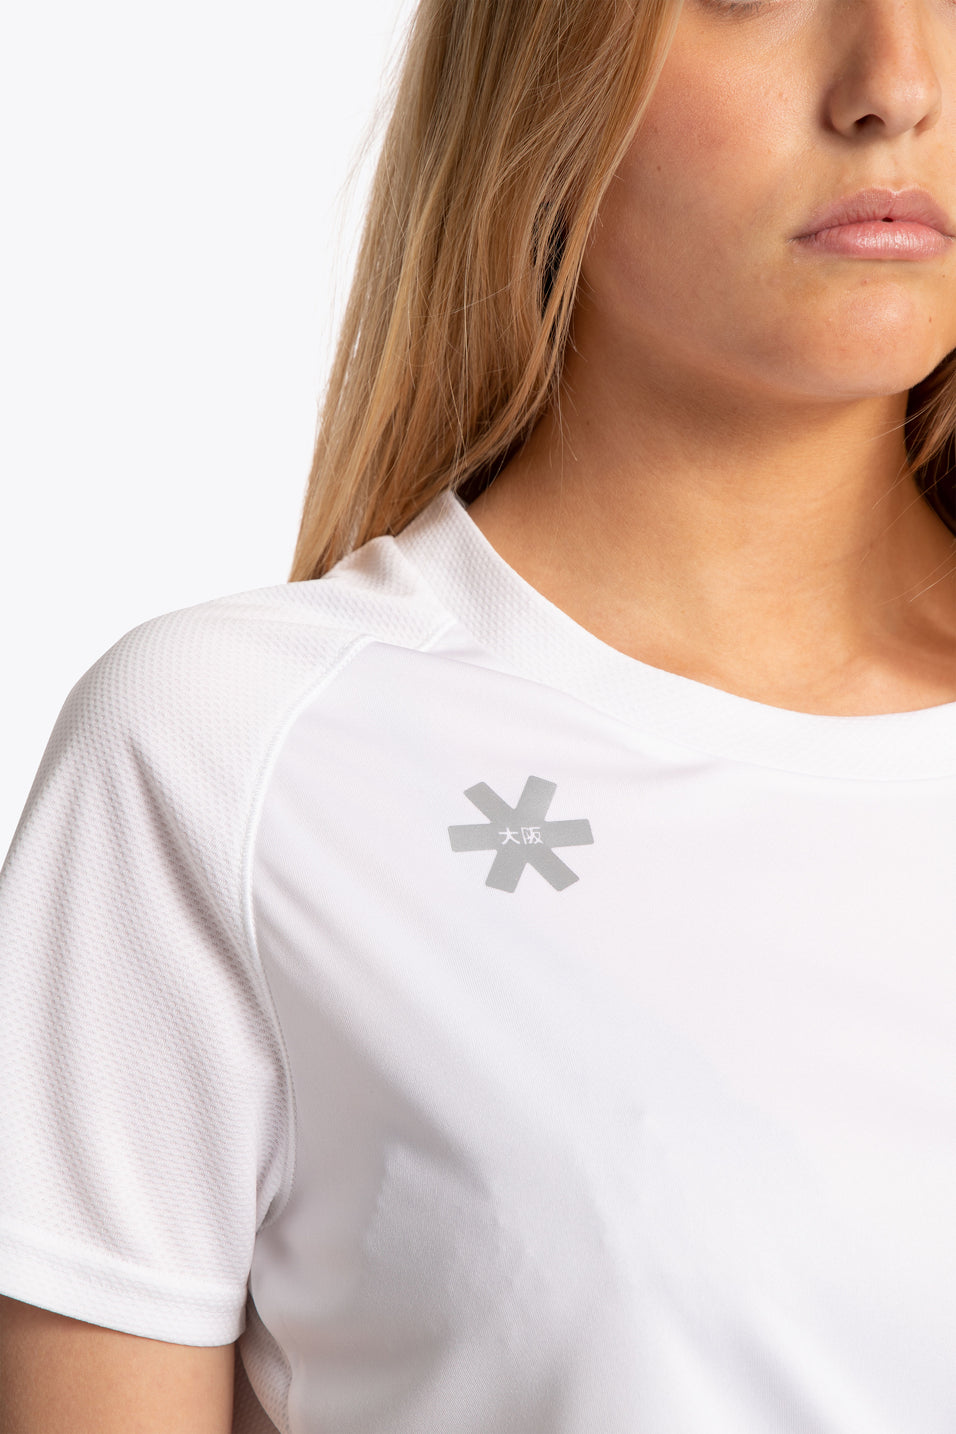 Women sport shirt white